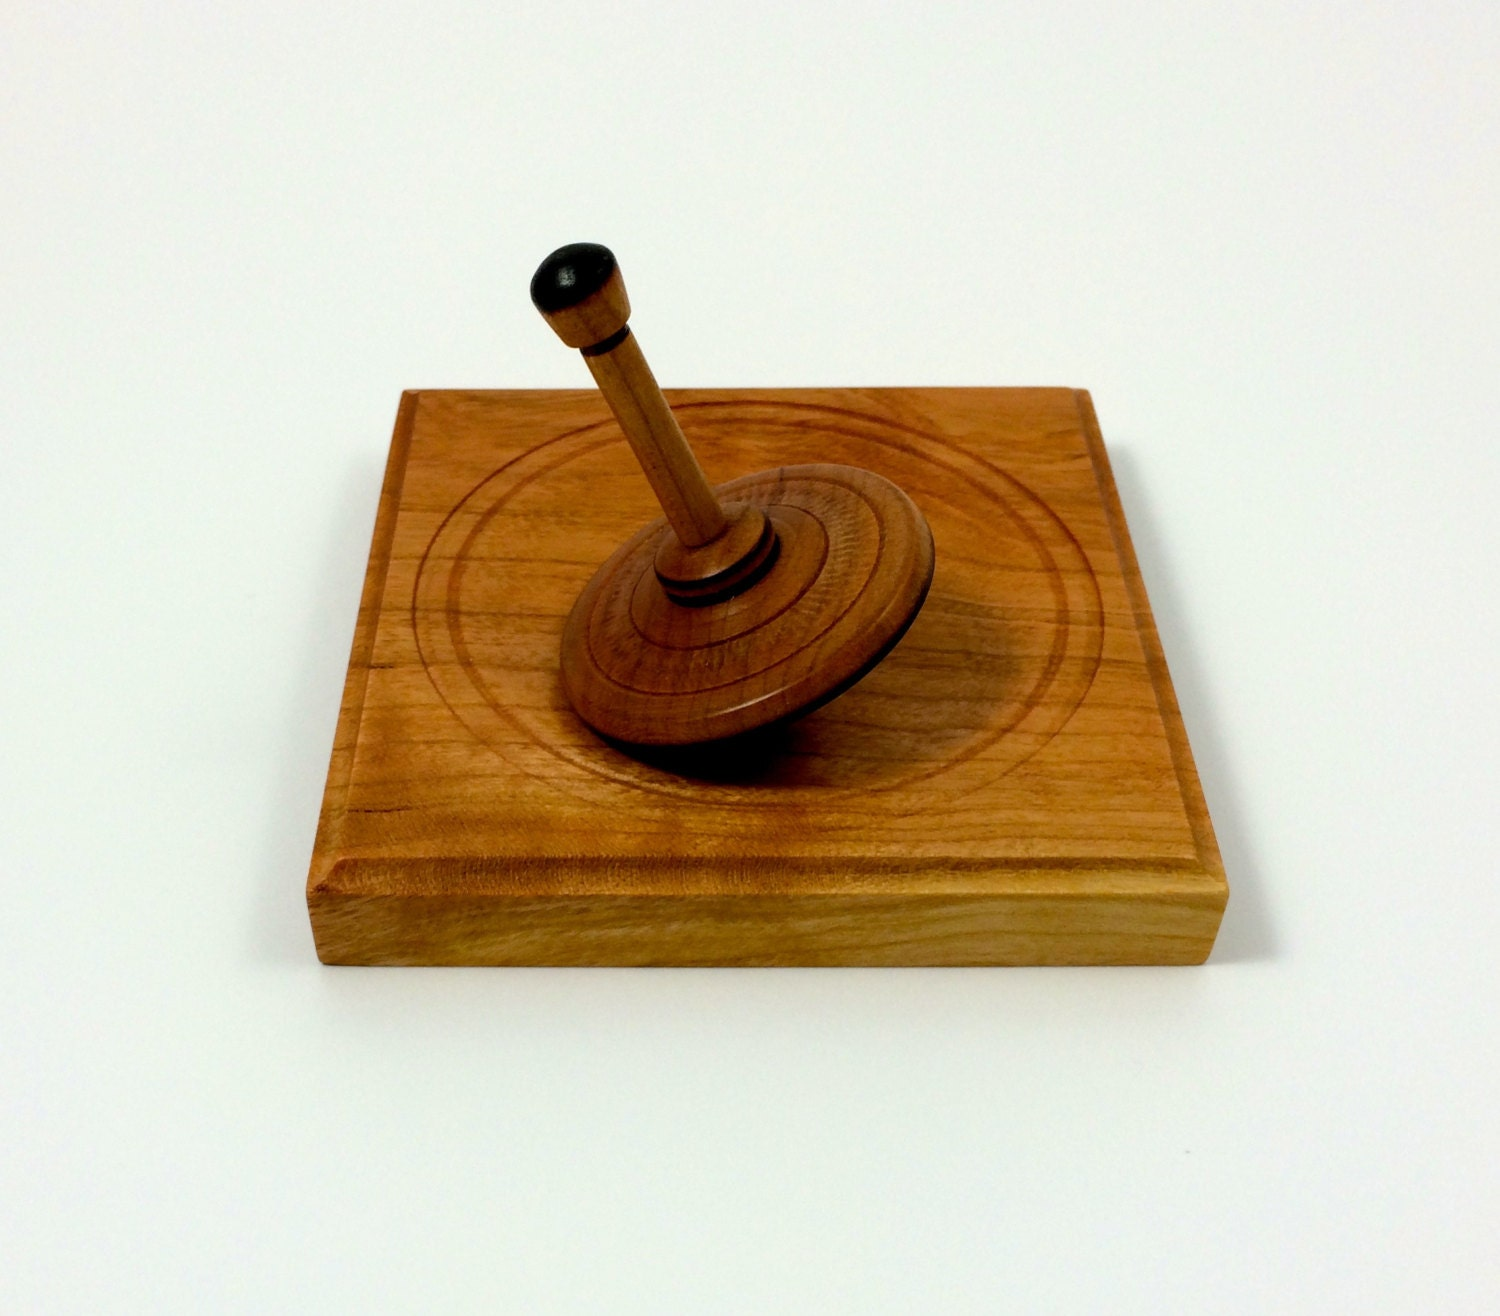 Cherry Wood Spinning Top with Cherry Display Base Natural Wood